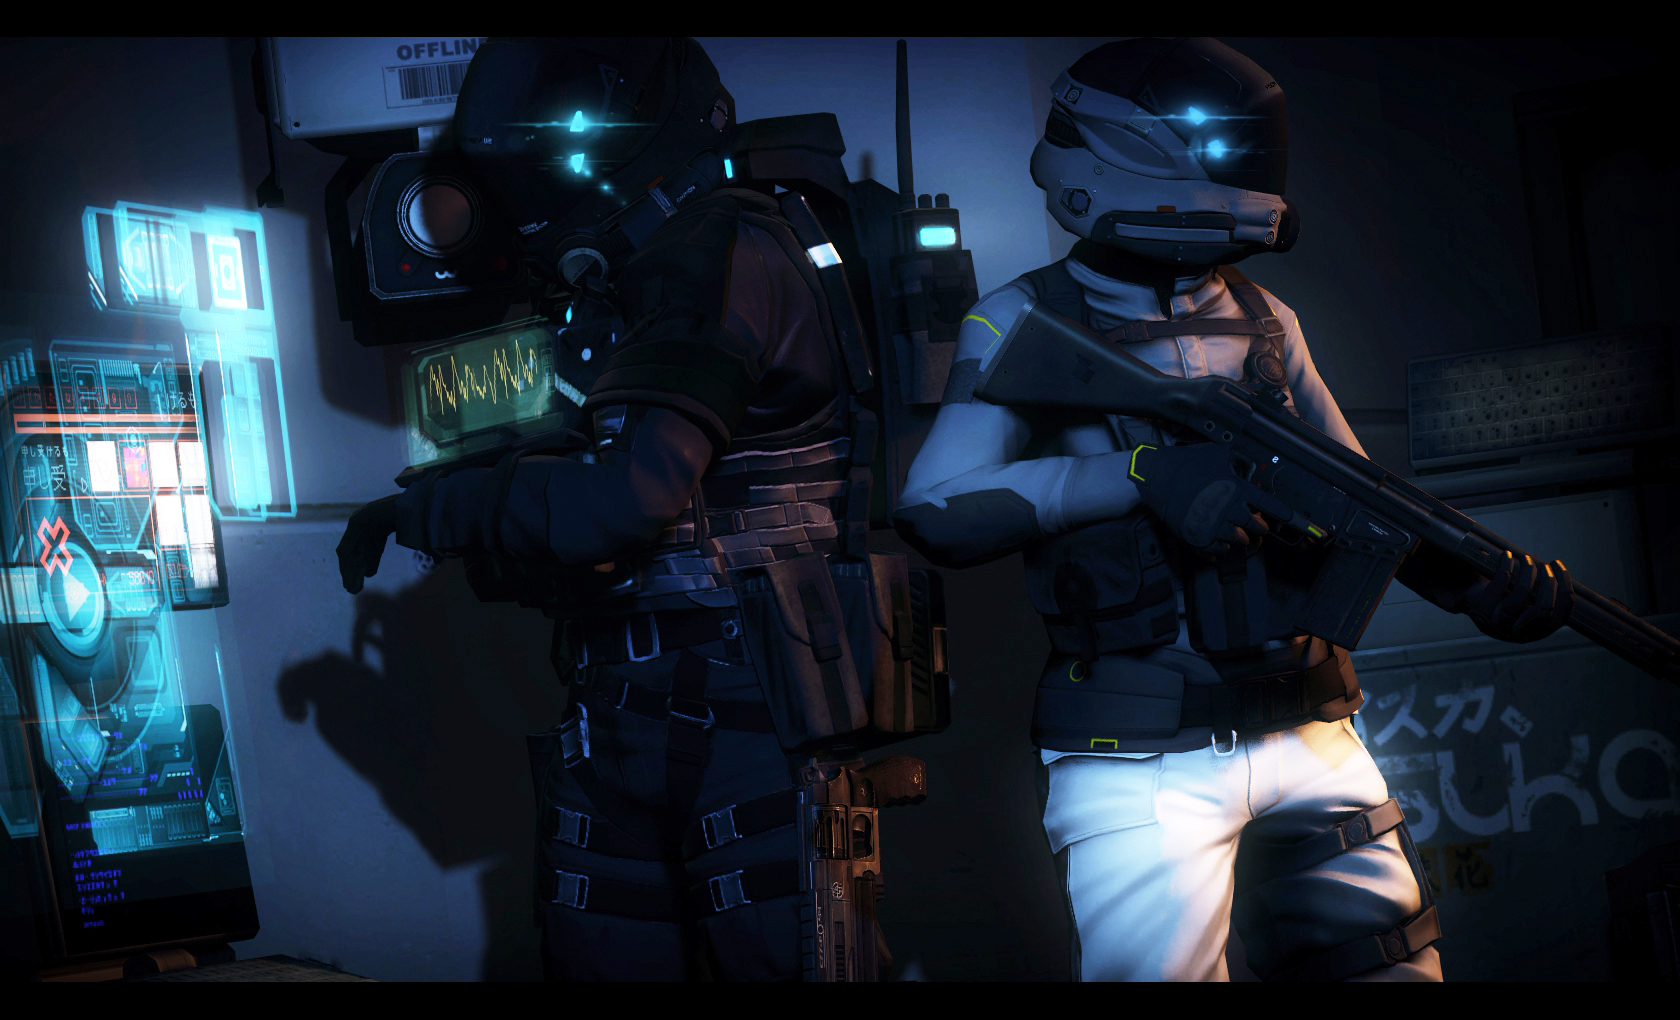 Two Operators hacking there way into a door or s- by lolcopter121